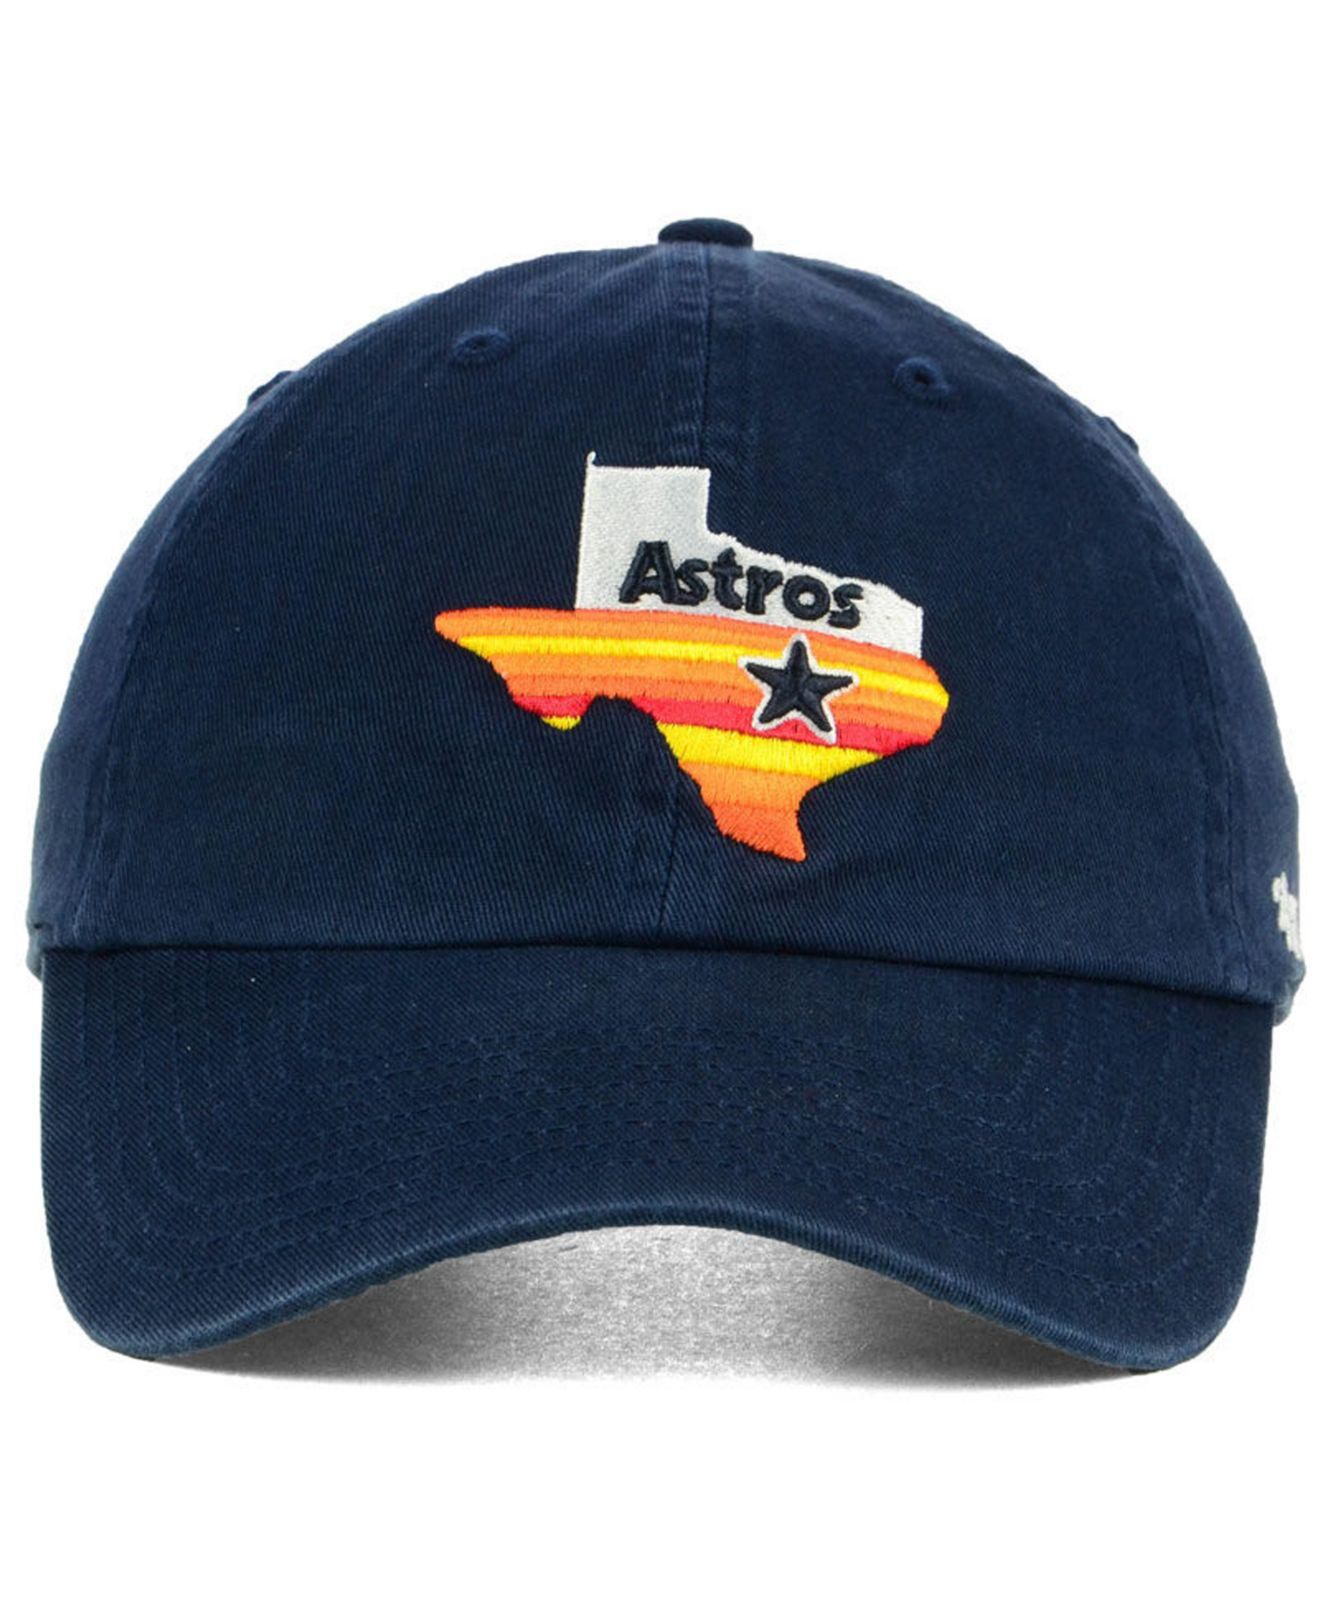 28d3db3cd888c Lyst - 47 Brand Houston Astros Core Clean Up Cap in Blue for Men